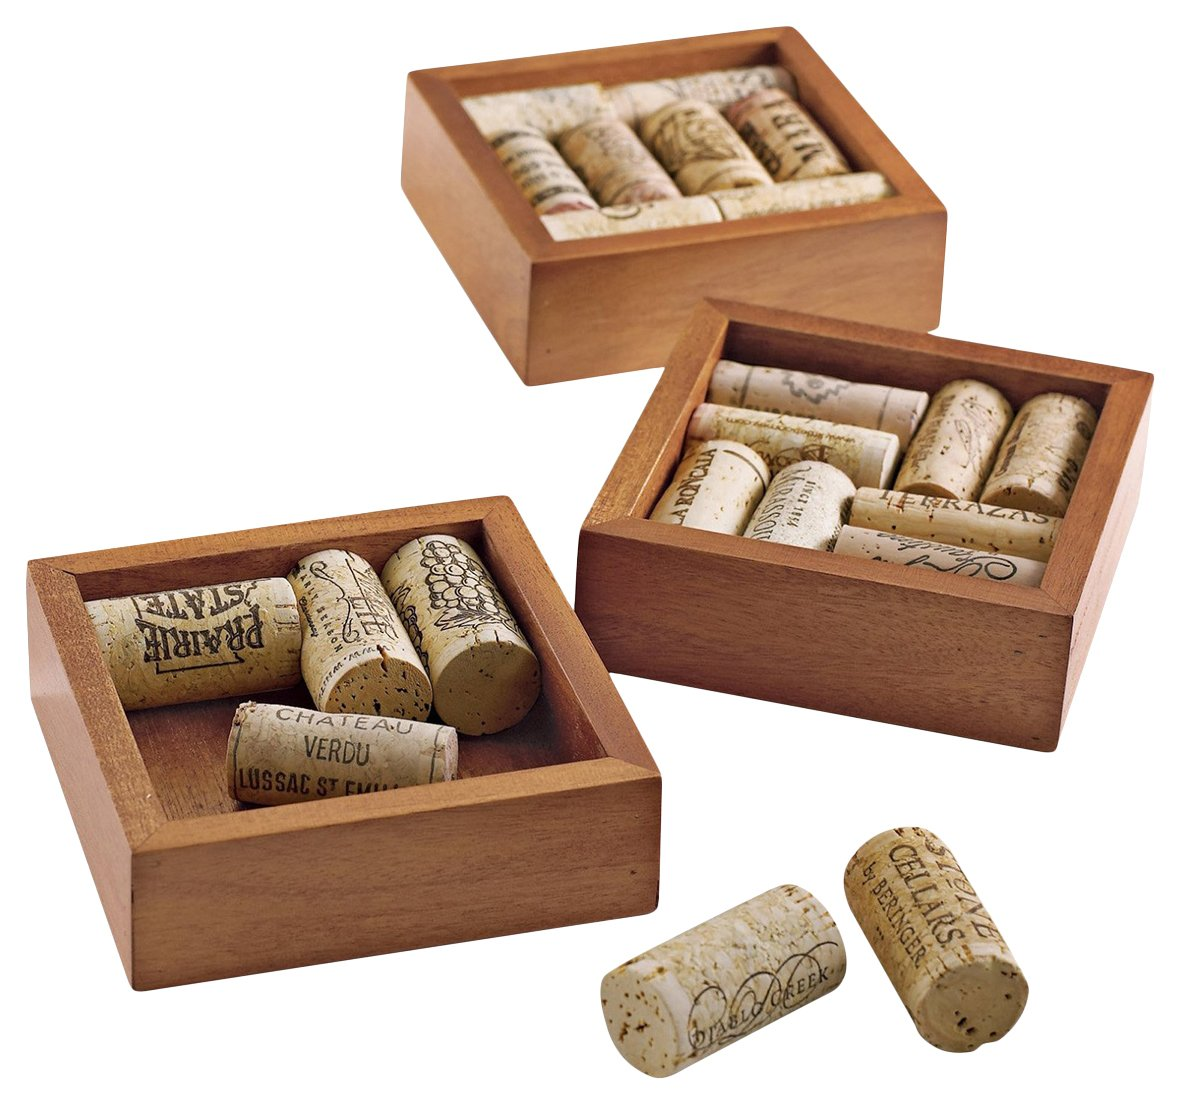 Wine Enthusiast Wine Cork Coasters Kit, Set of 4 by Wine Enthusiast